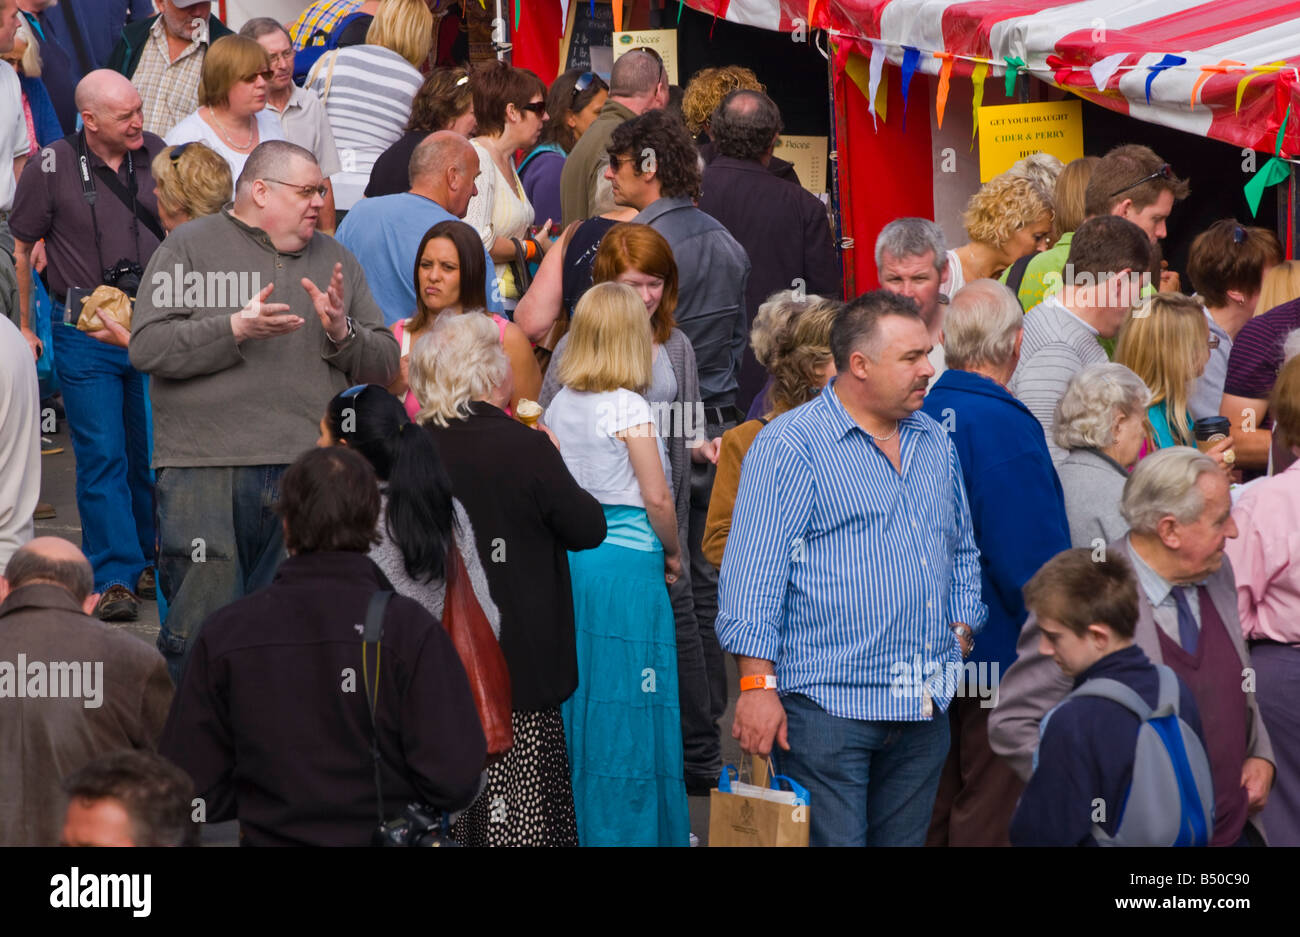 People wander and browse openair stalls at Abergavenny Food Festival Stock Photo